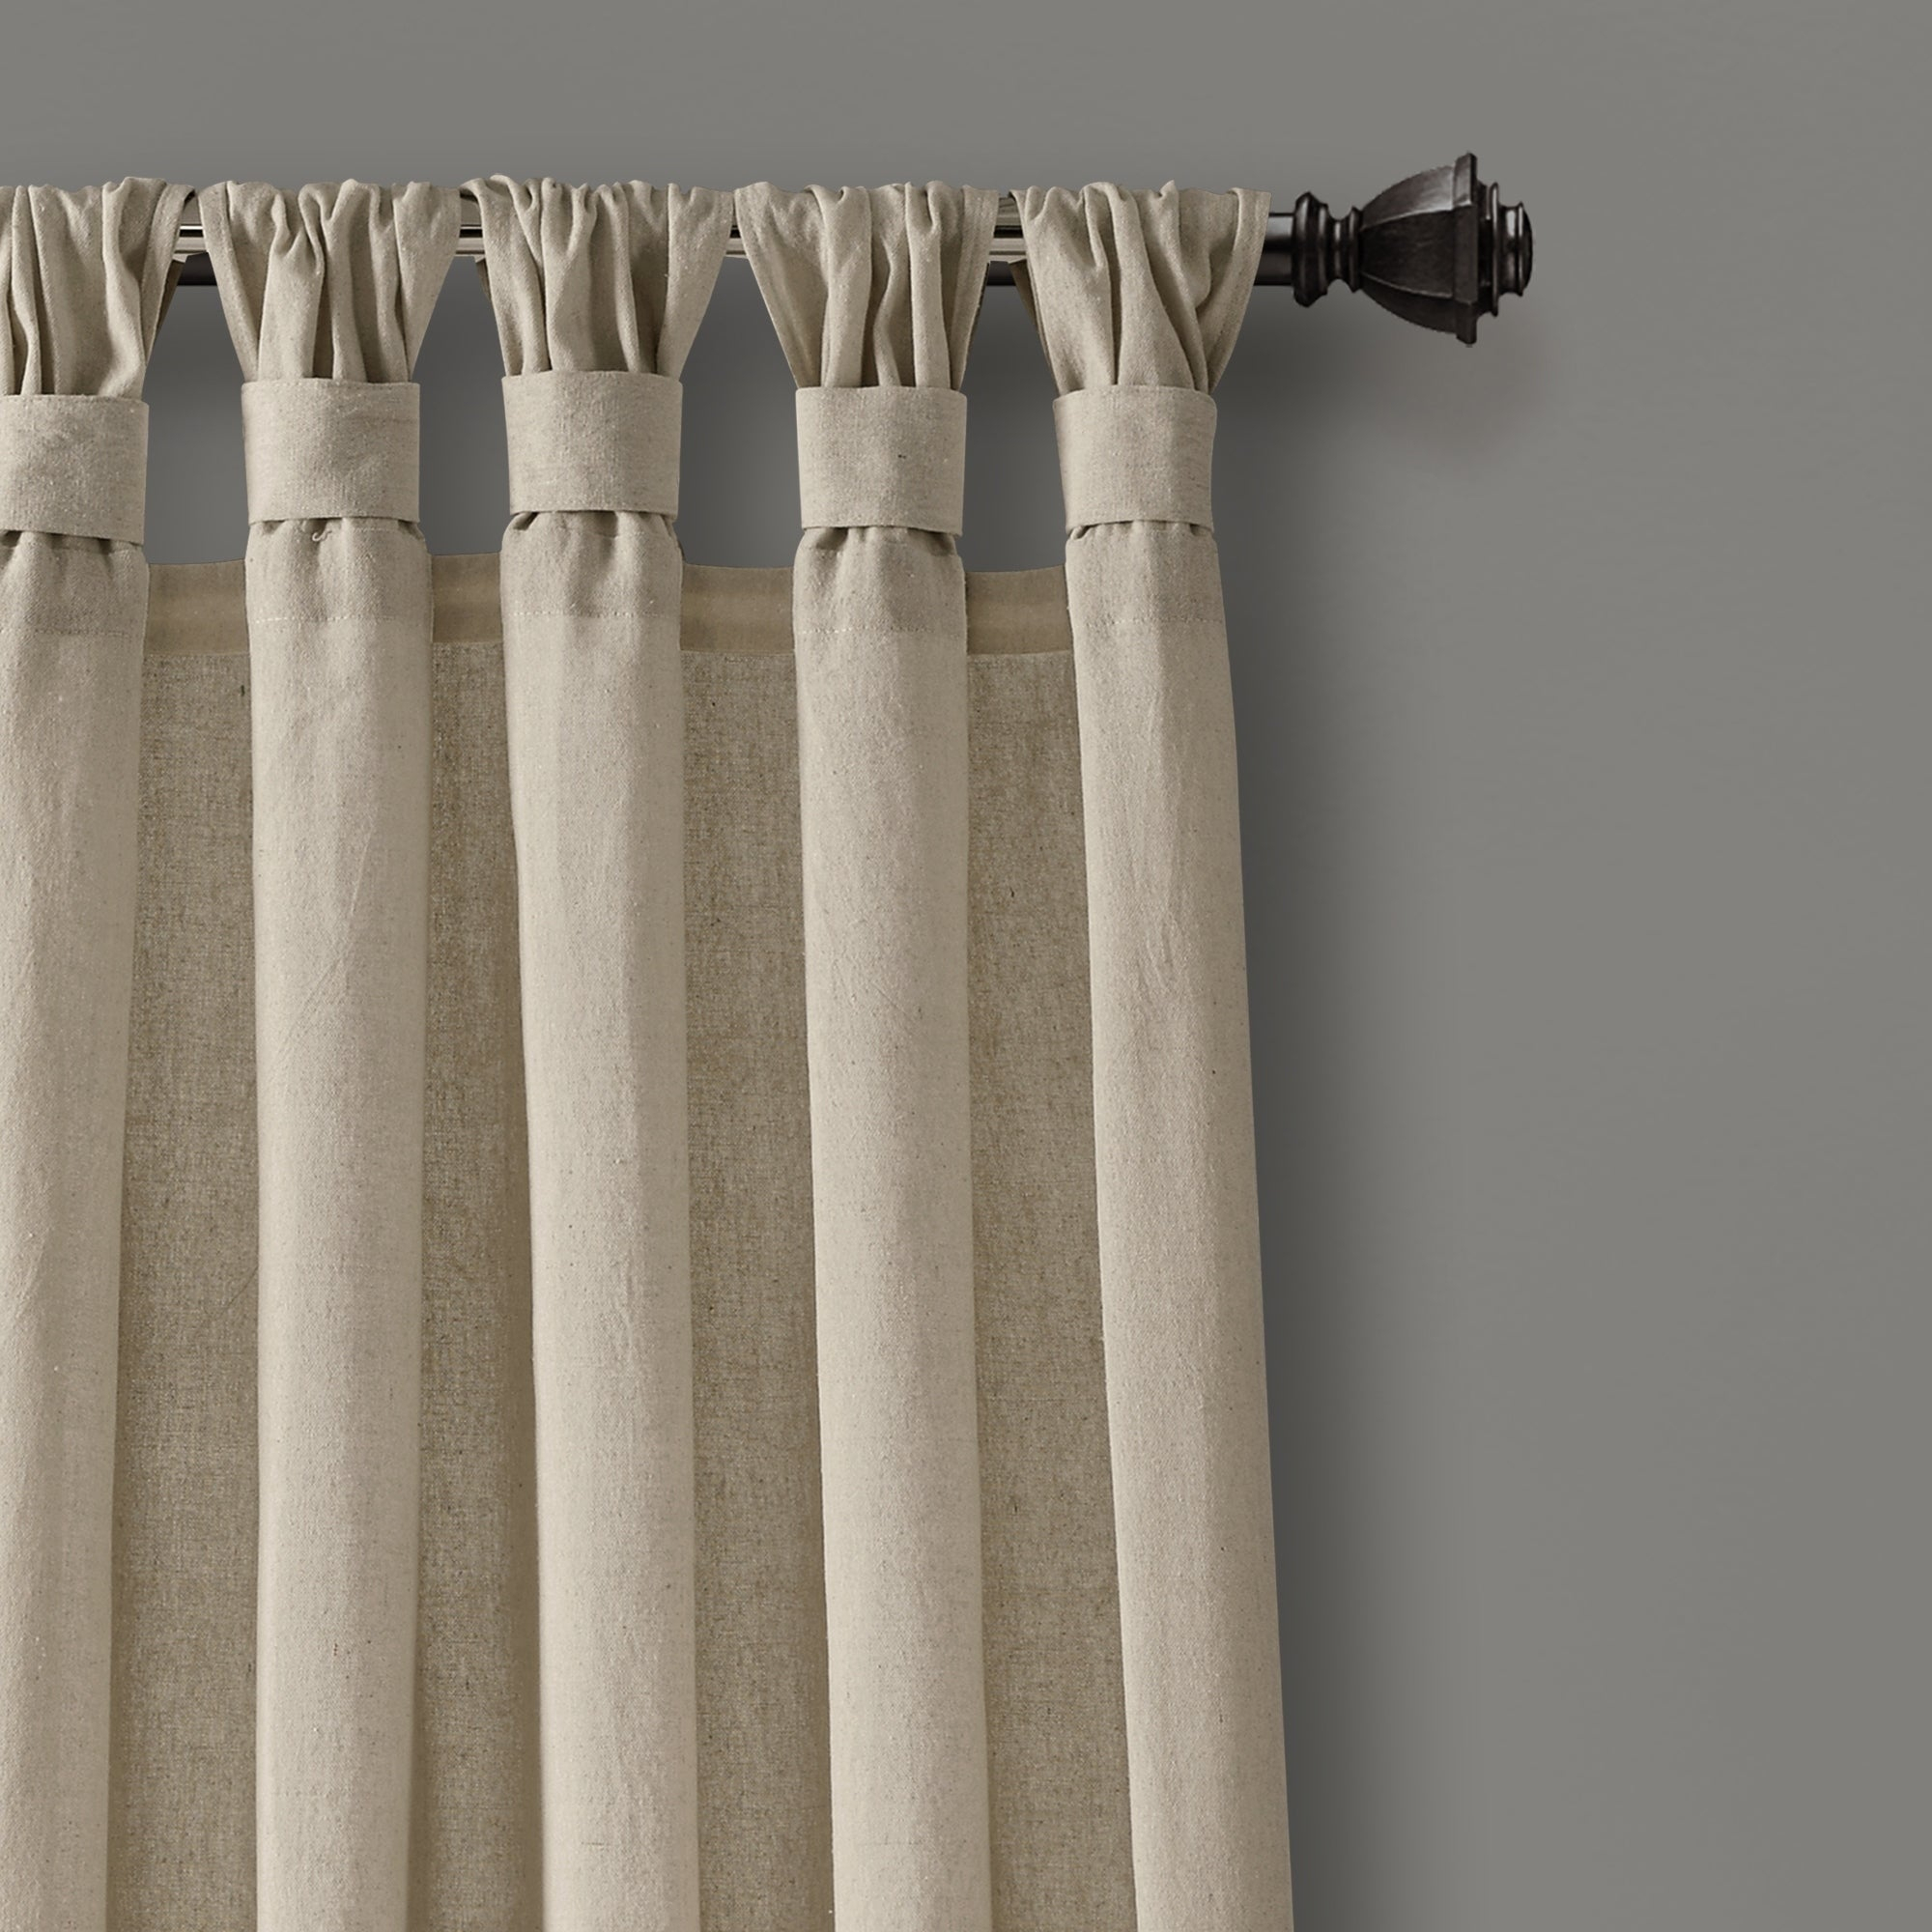 Porch & Den Alsea Burlap Knotted Tab Top Window Curtain Panel Pair For Knotted Tab Top Window Curtain Panel Pairs (View 2 of 20)